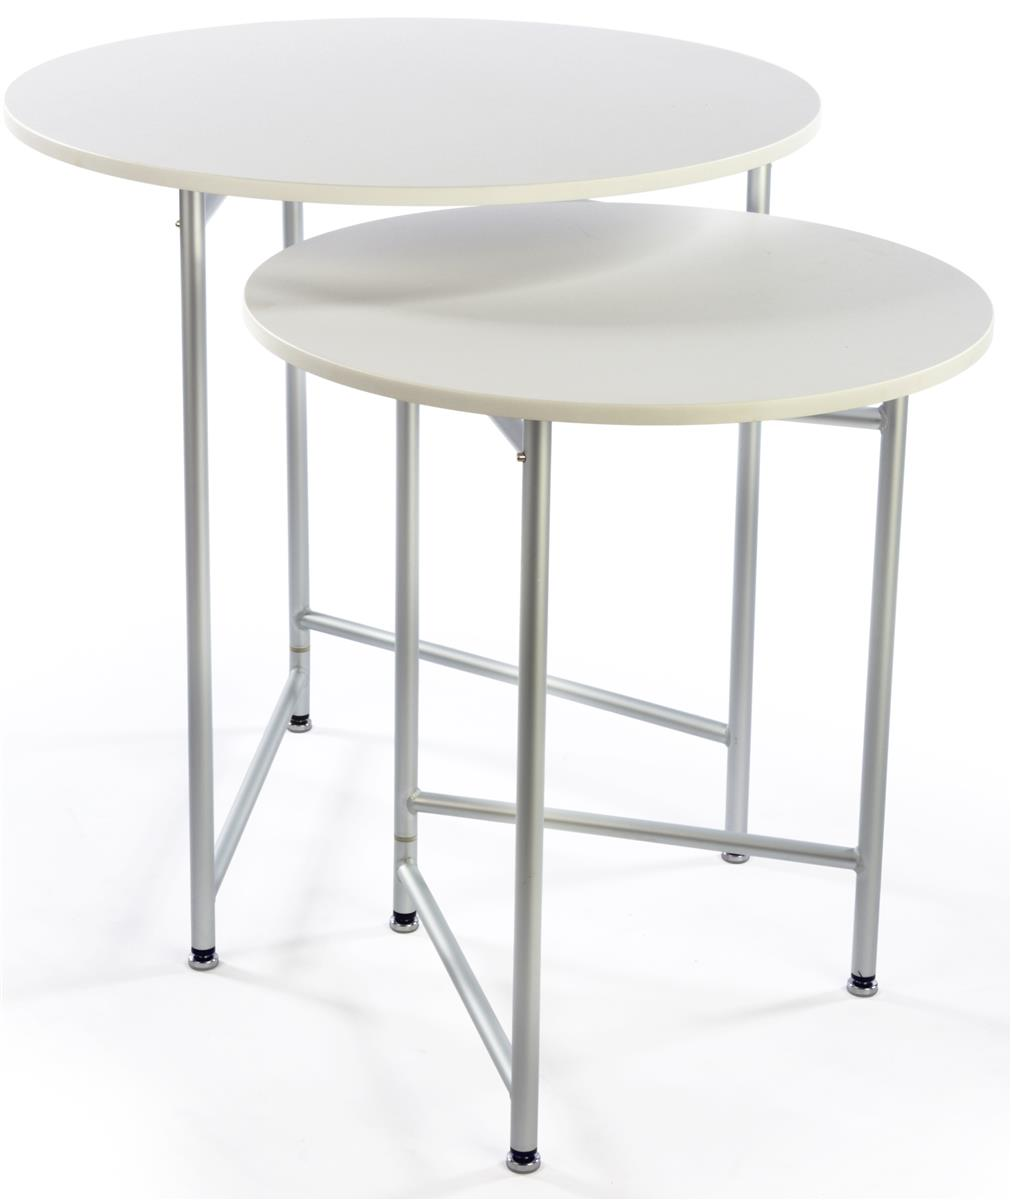 Round retail table set 2 units included for Display table